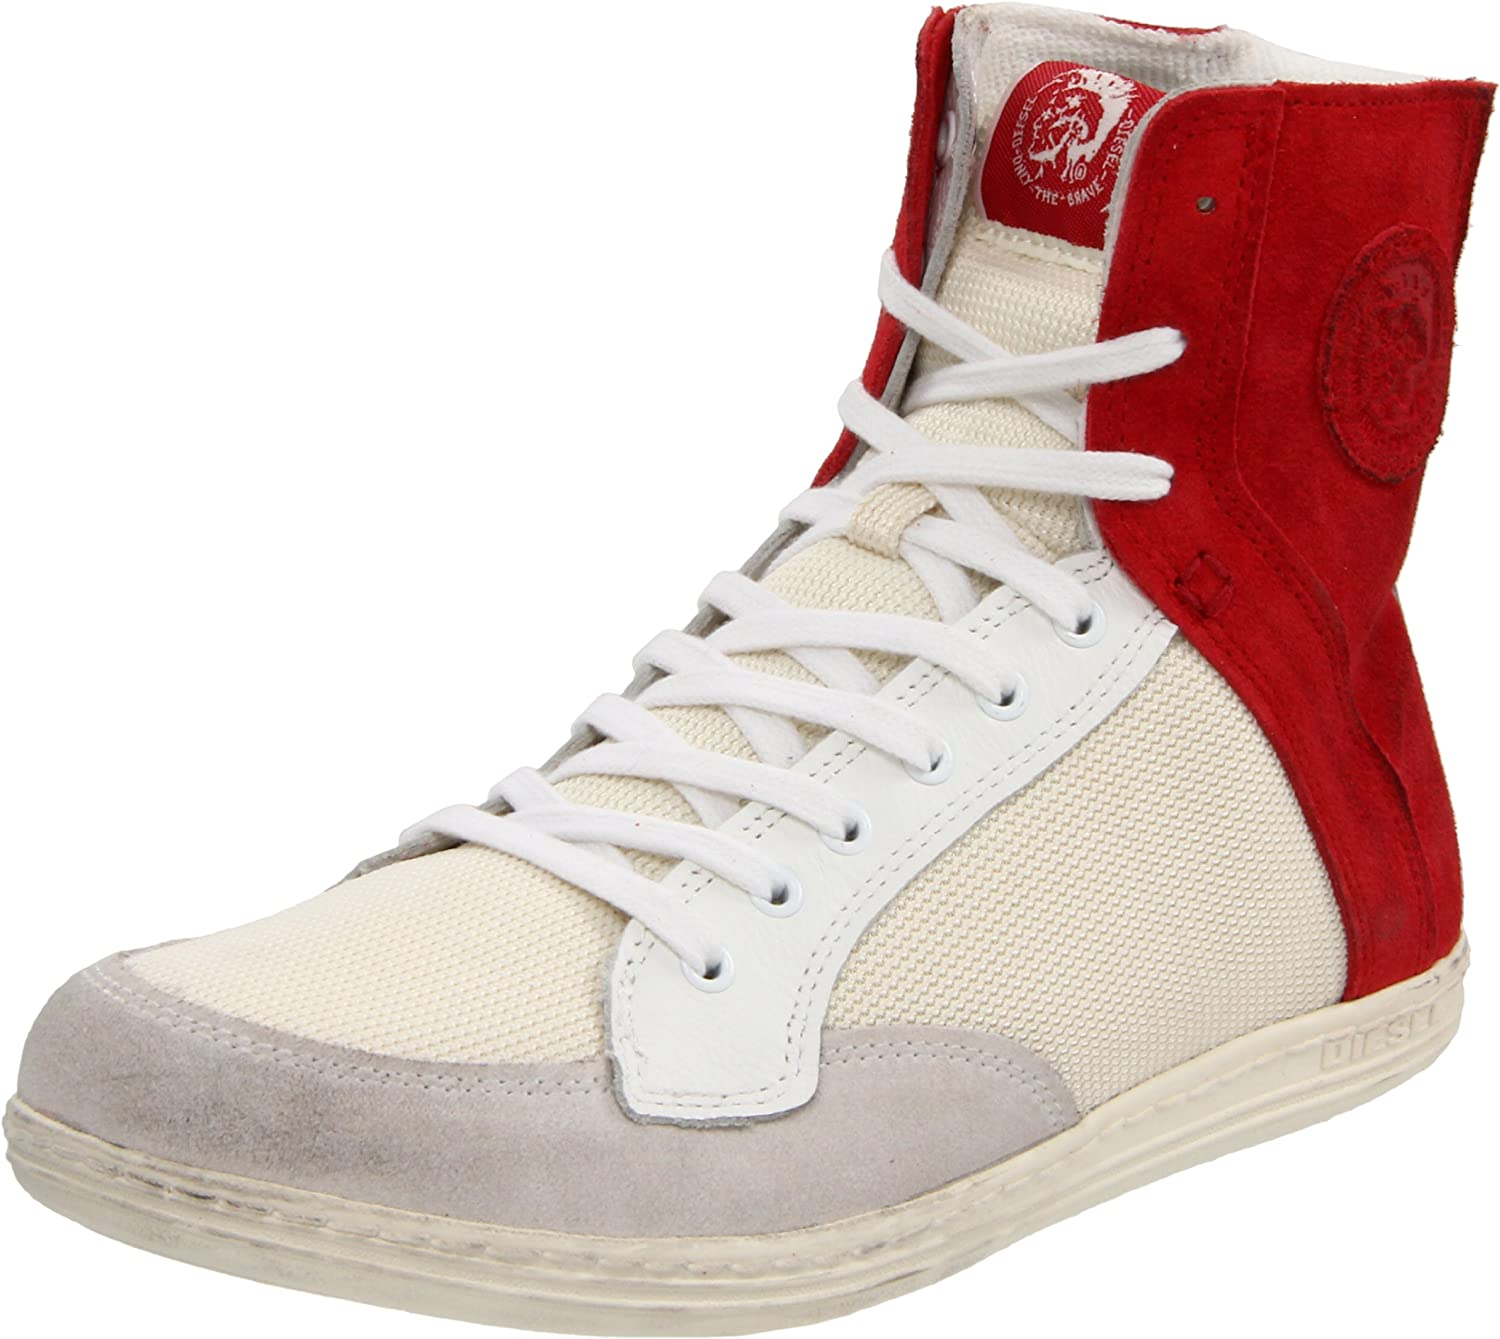 Diesel Be super welcome Max 79% OFF Men's Guliver High-Top Sneaker